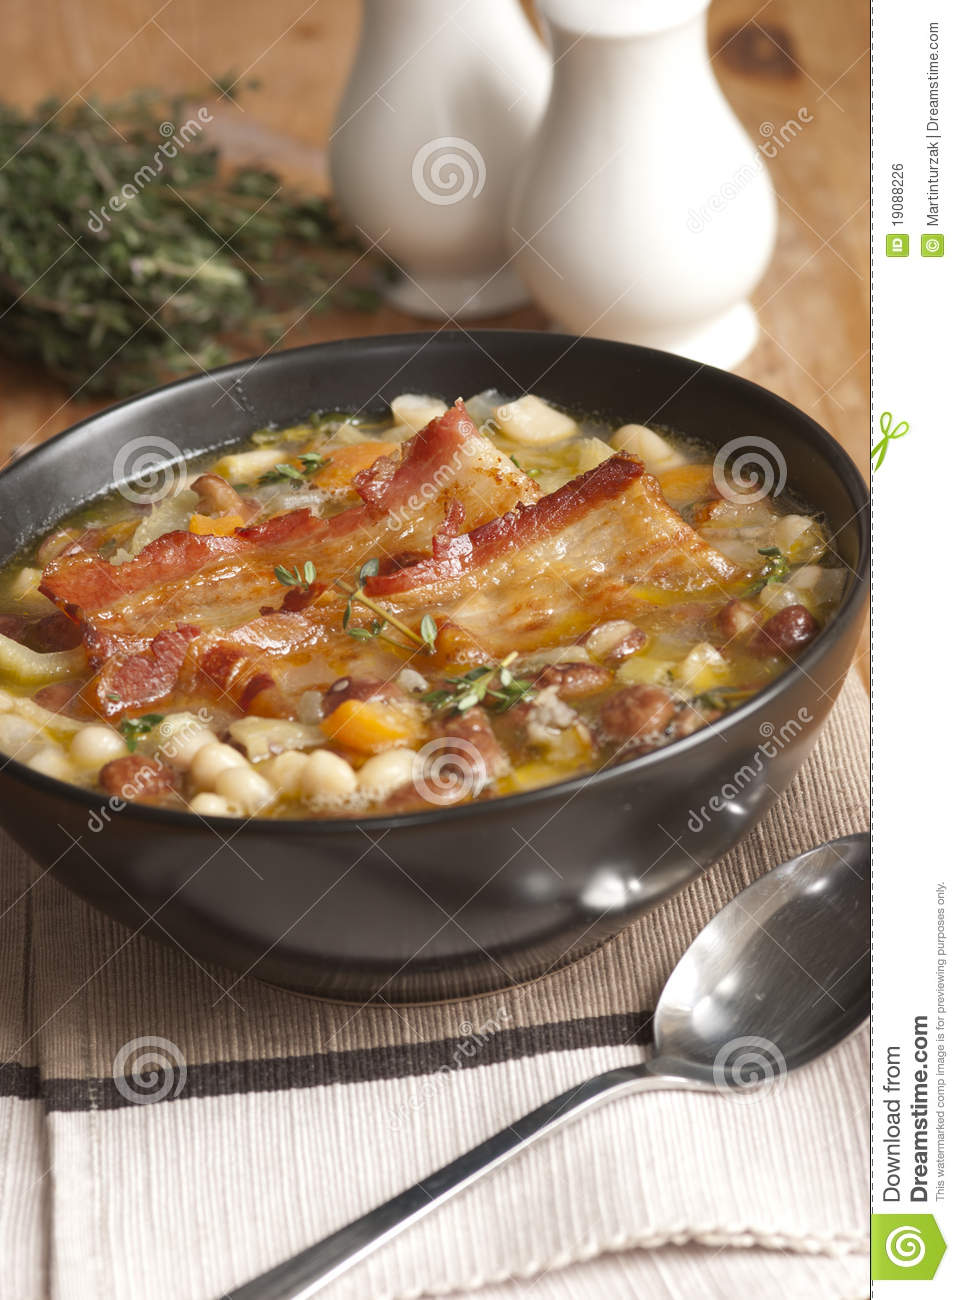 Tuscan Soup Royalty Free Stock Image - Image: 19088226